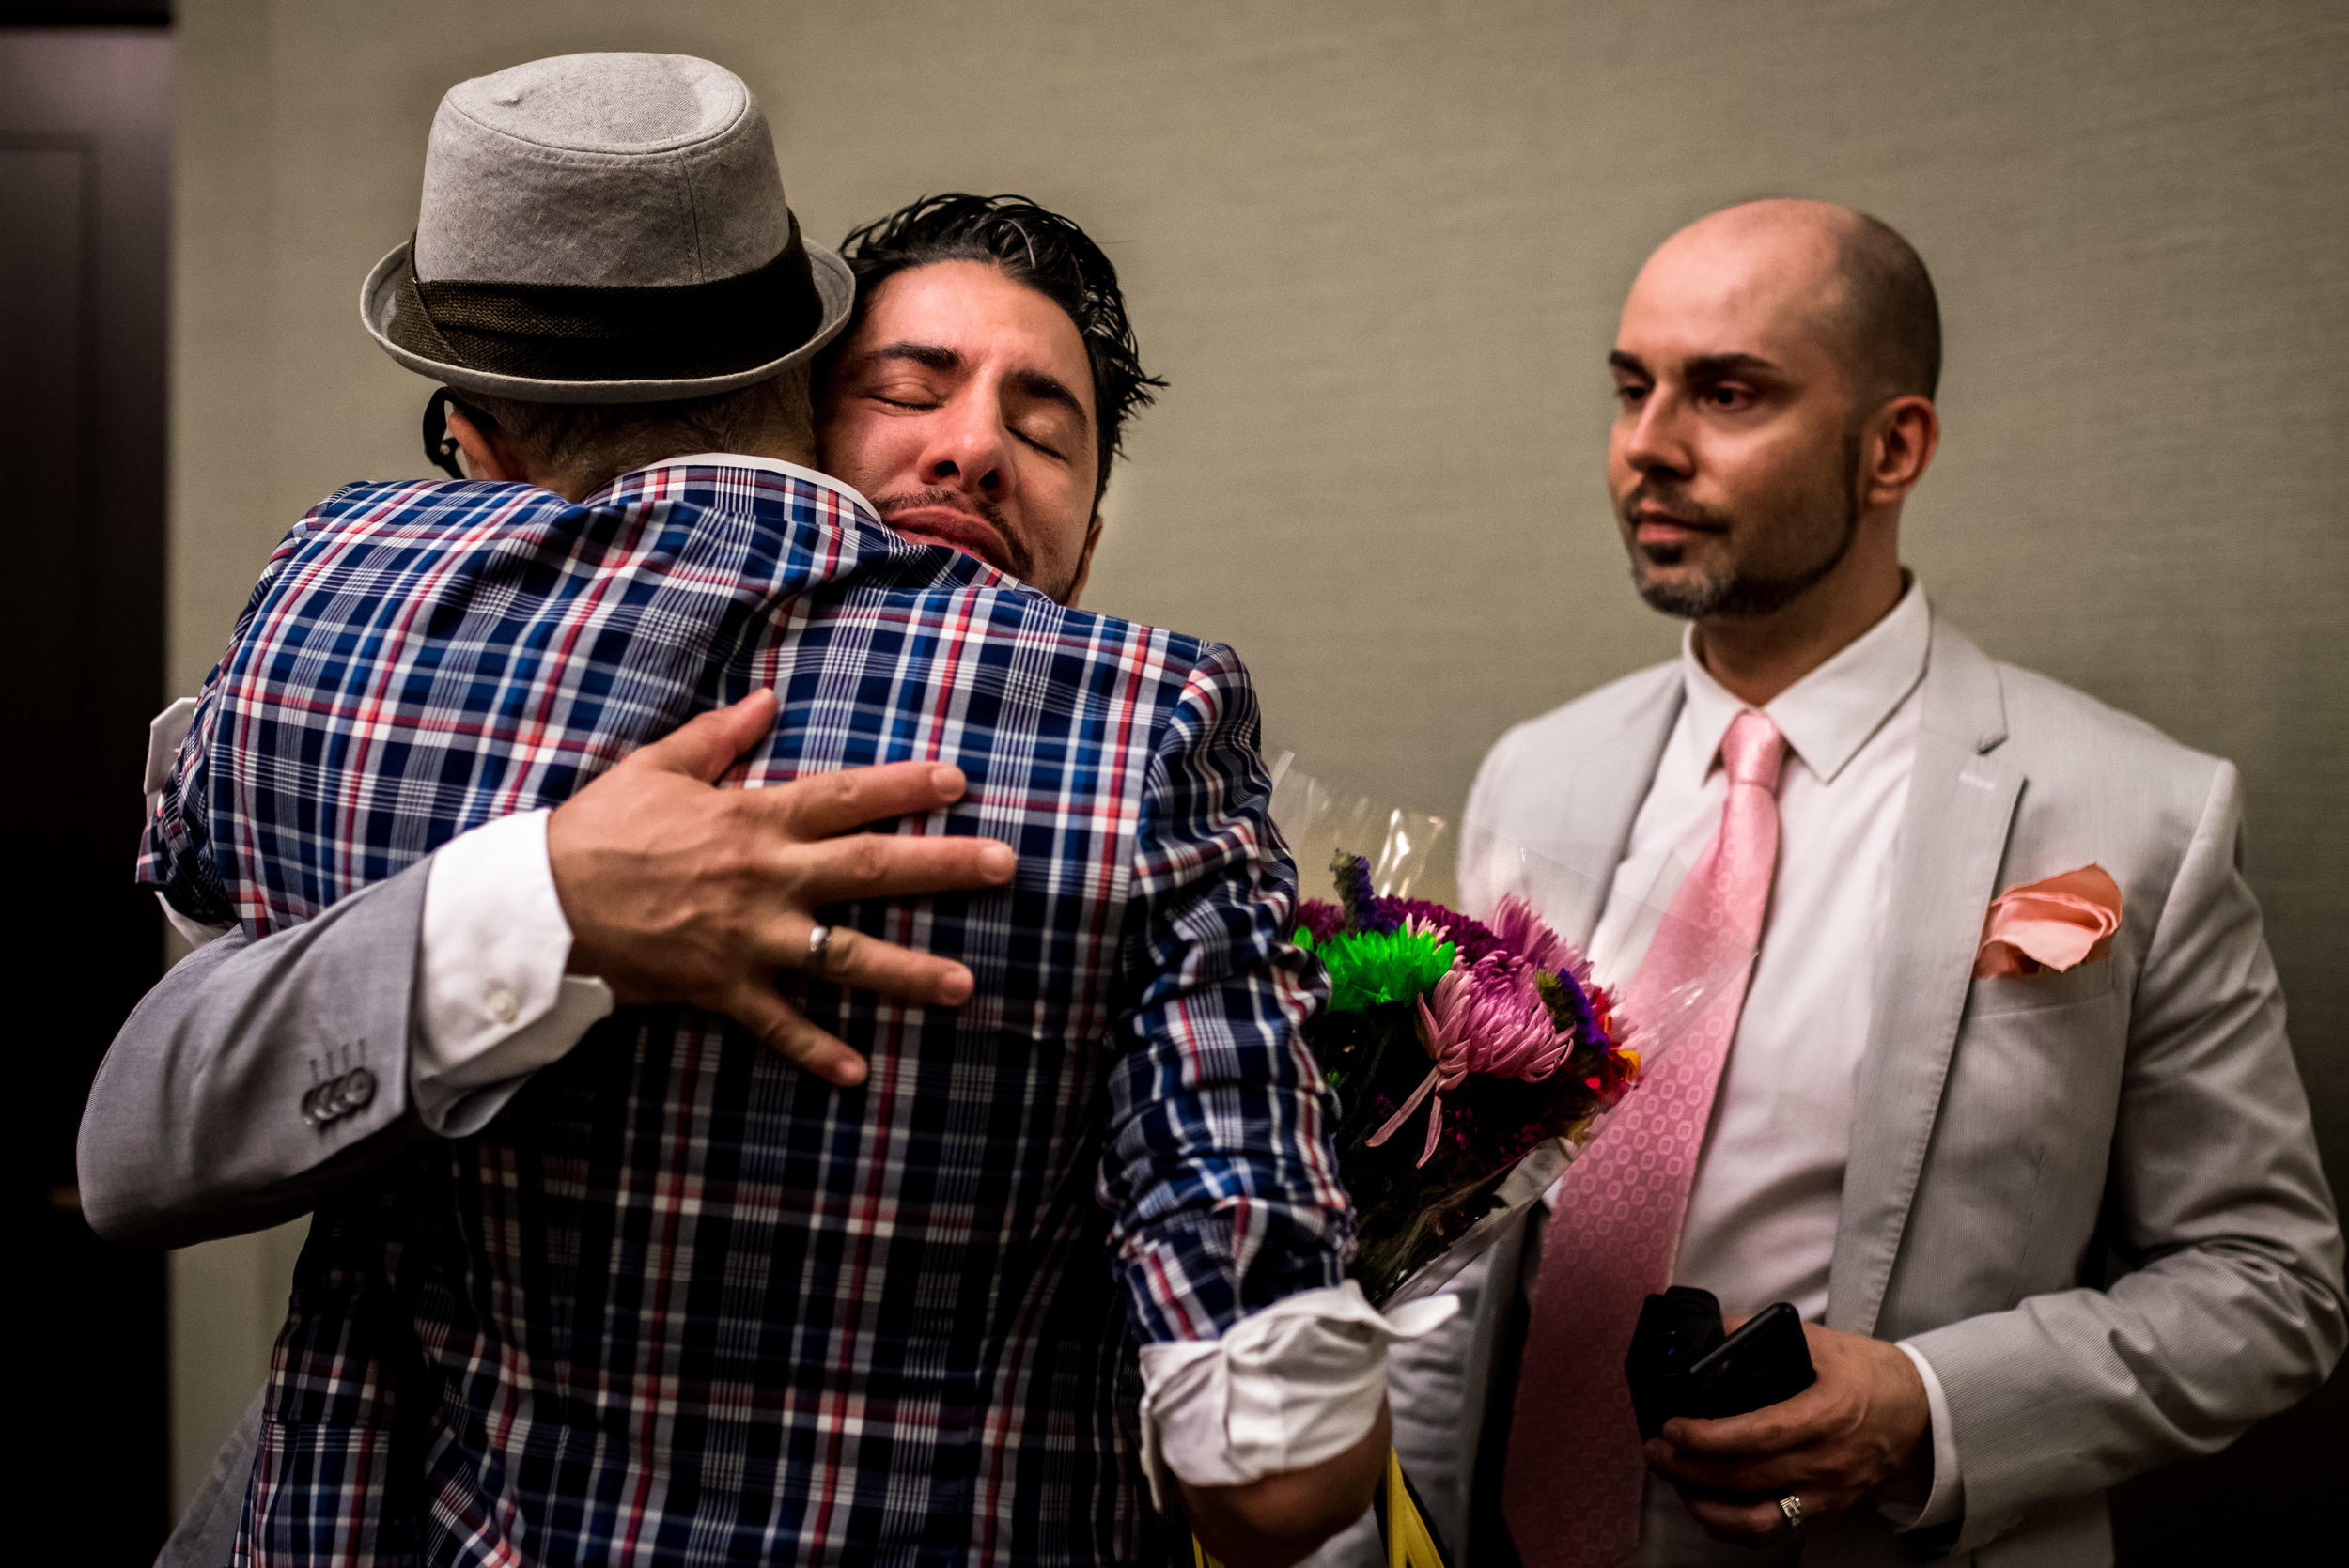 Rob-Marcelo-Gompers-Wedding-Photo-by- Tricia-S.-Ramsay-29.jpg